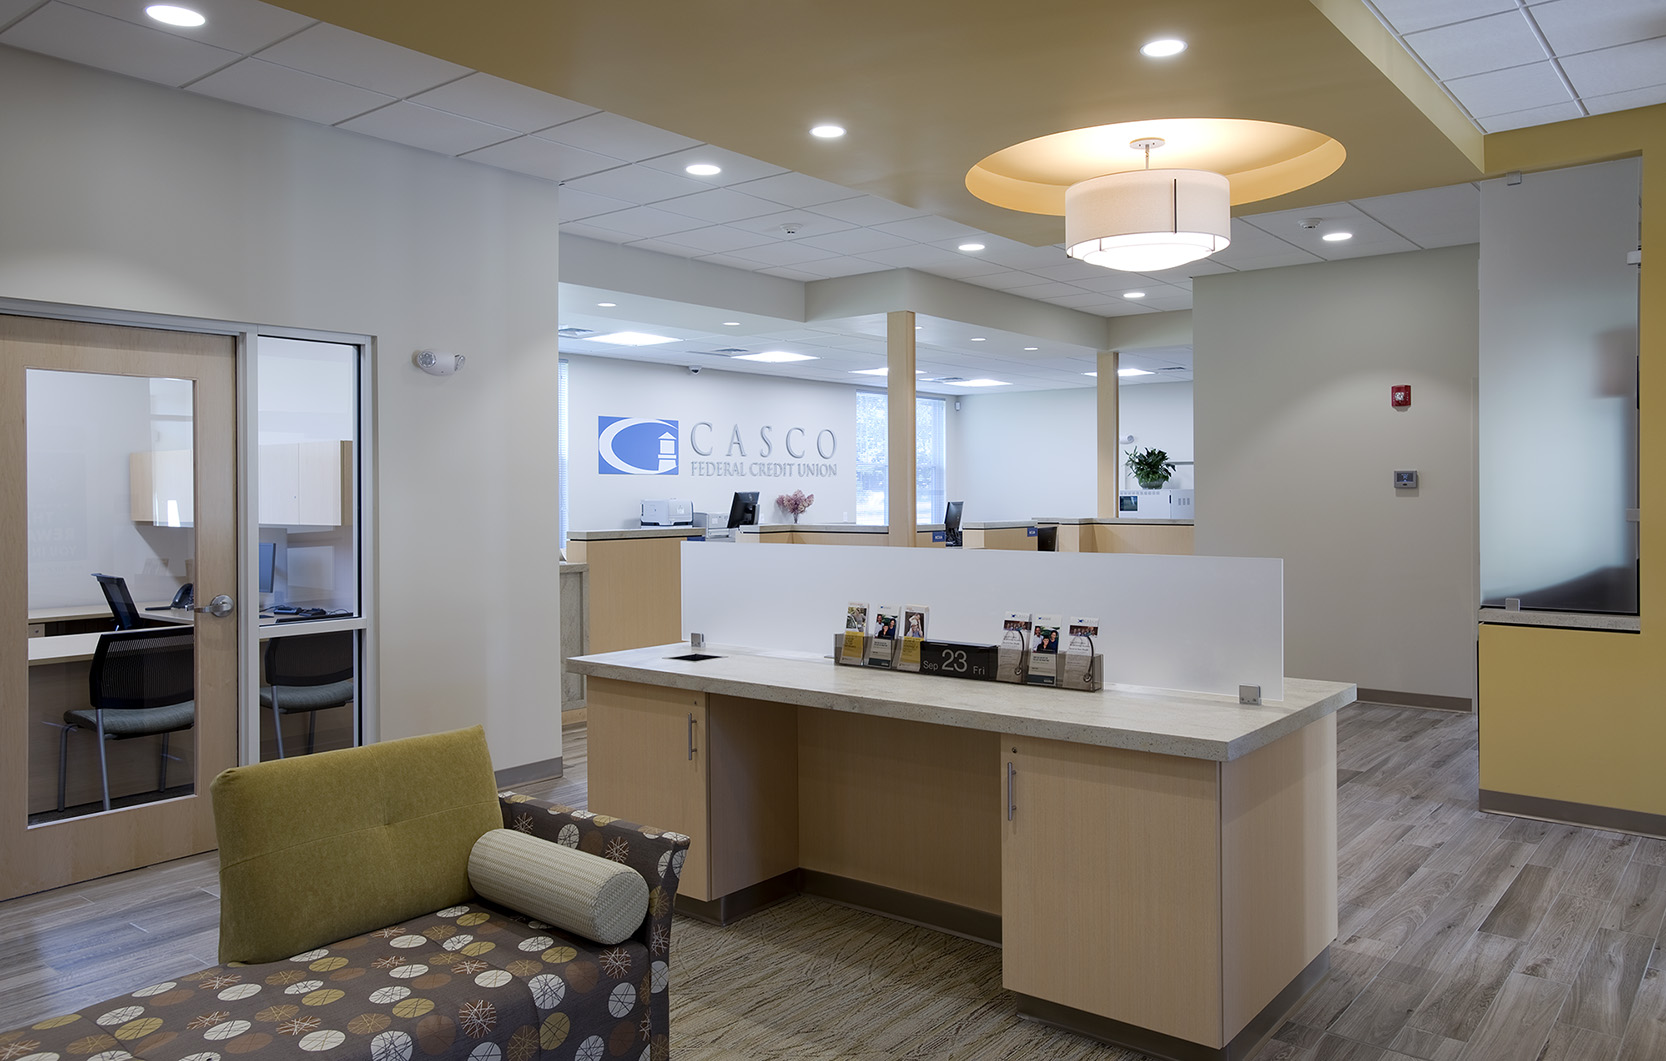 Glass-walled offices lining the perimeter of the branch transmit plenty of natural light to the center of the space.